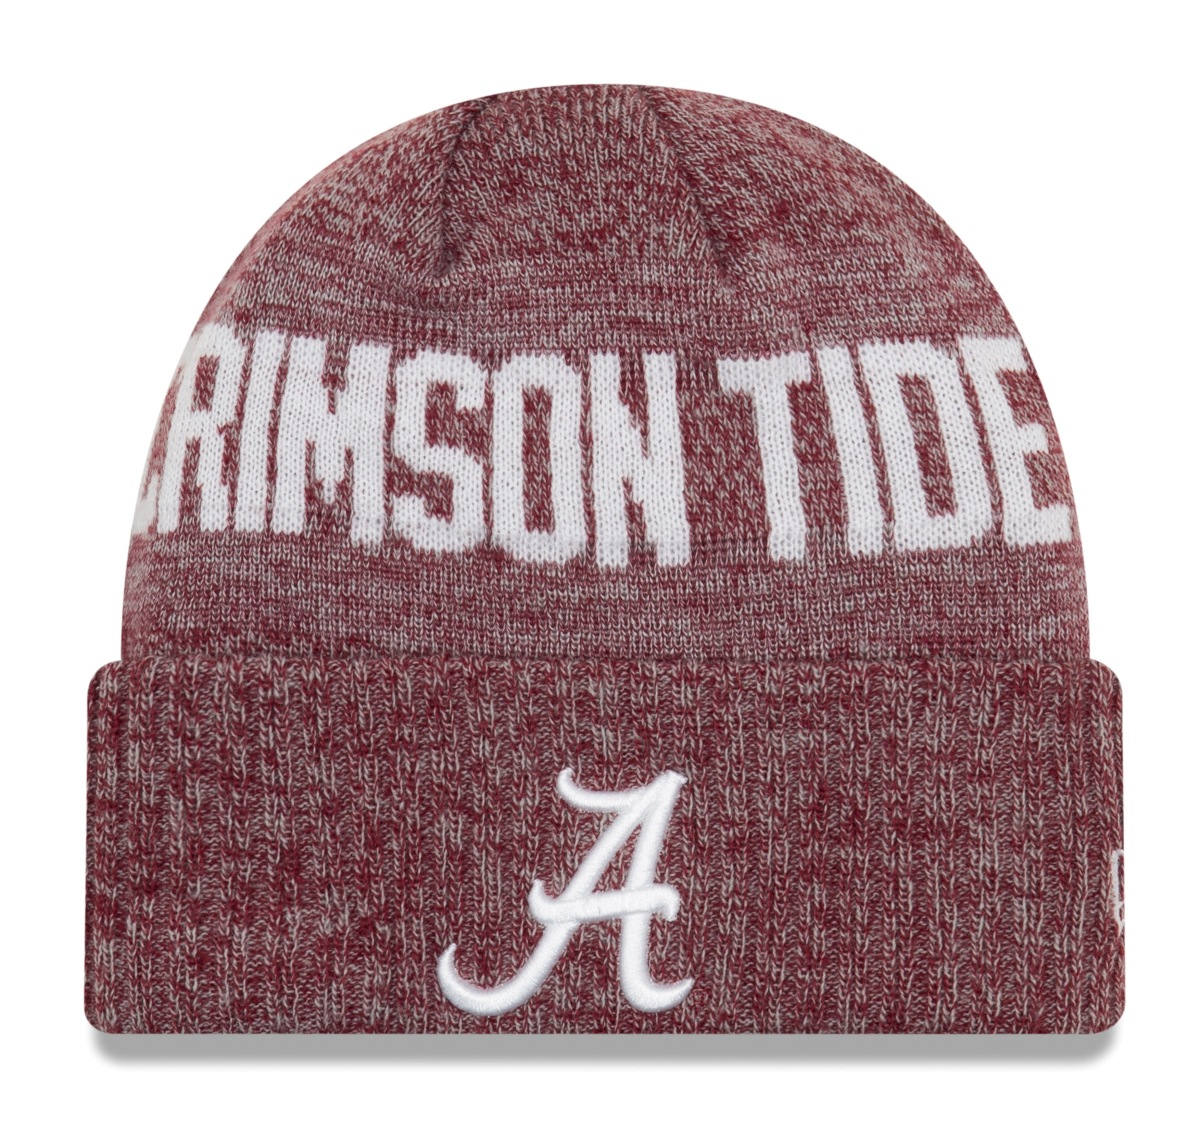 "Alabama Crimson Tide New Era NCAA ""Crisp Colored"" Cuffed Knit Hat"